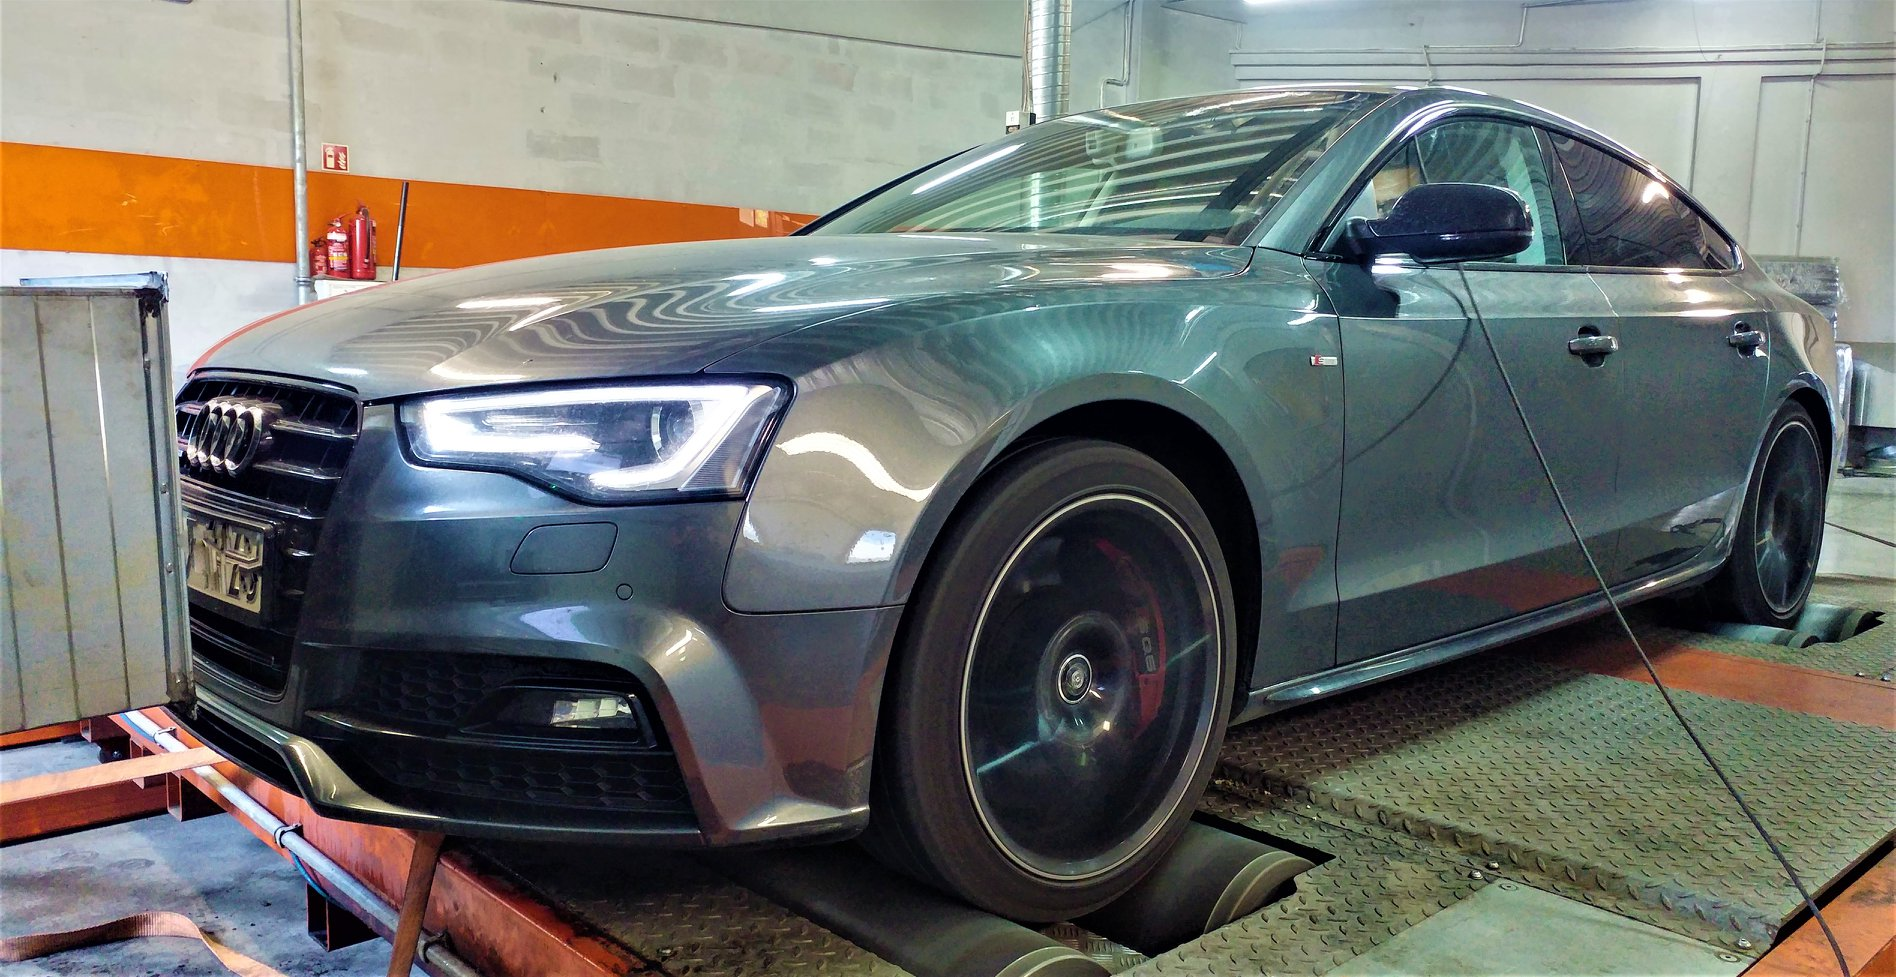 a5 2.0tfsi 225km stage 3 chiptuning